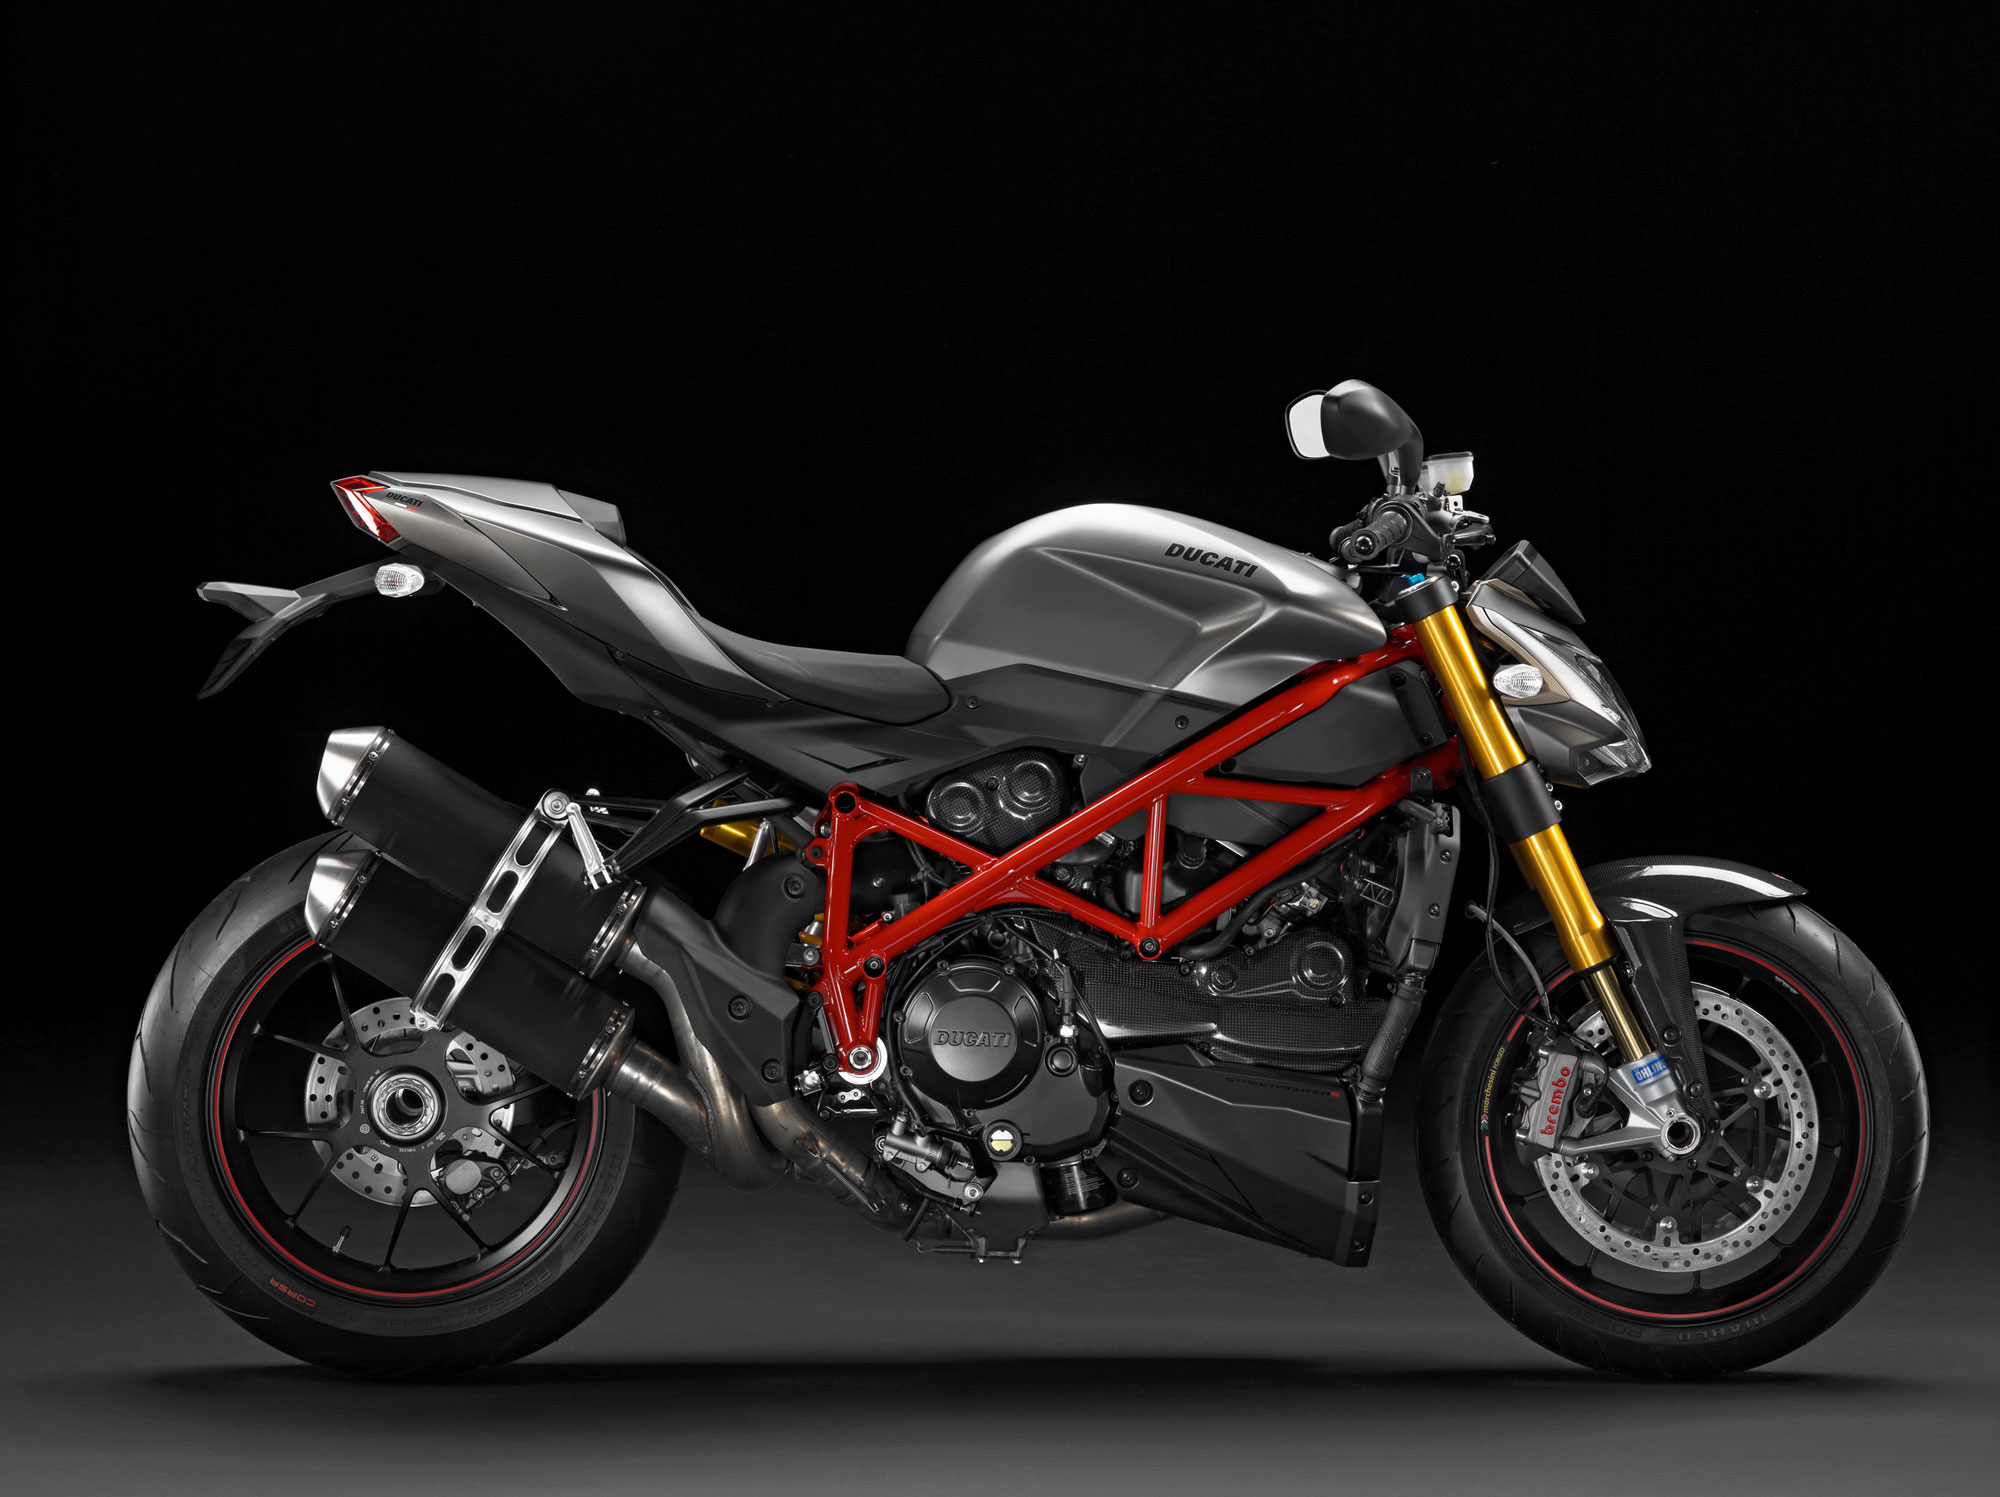 Ducati Streetfighter S Specifications